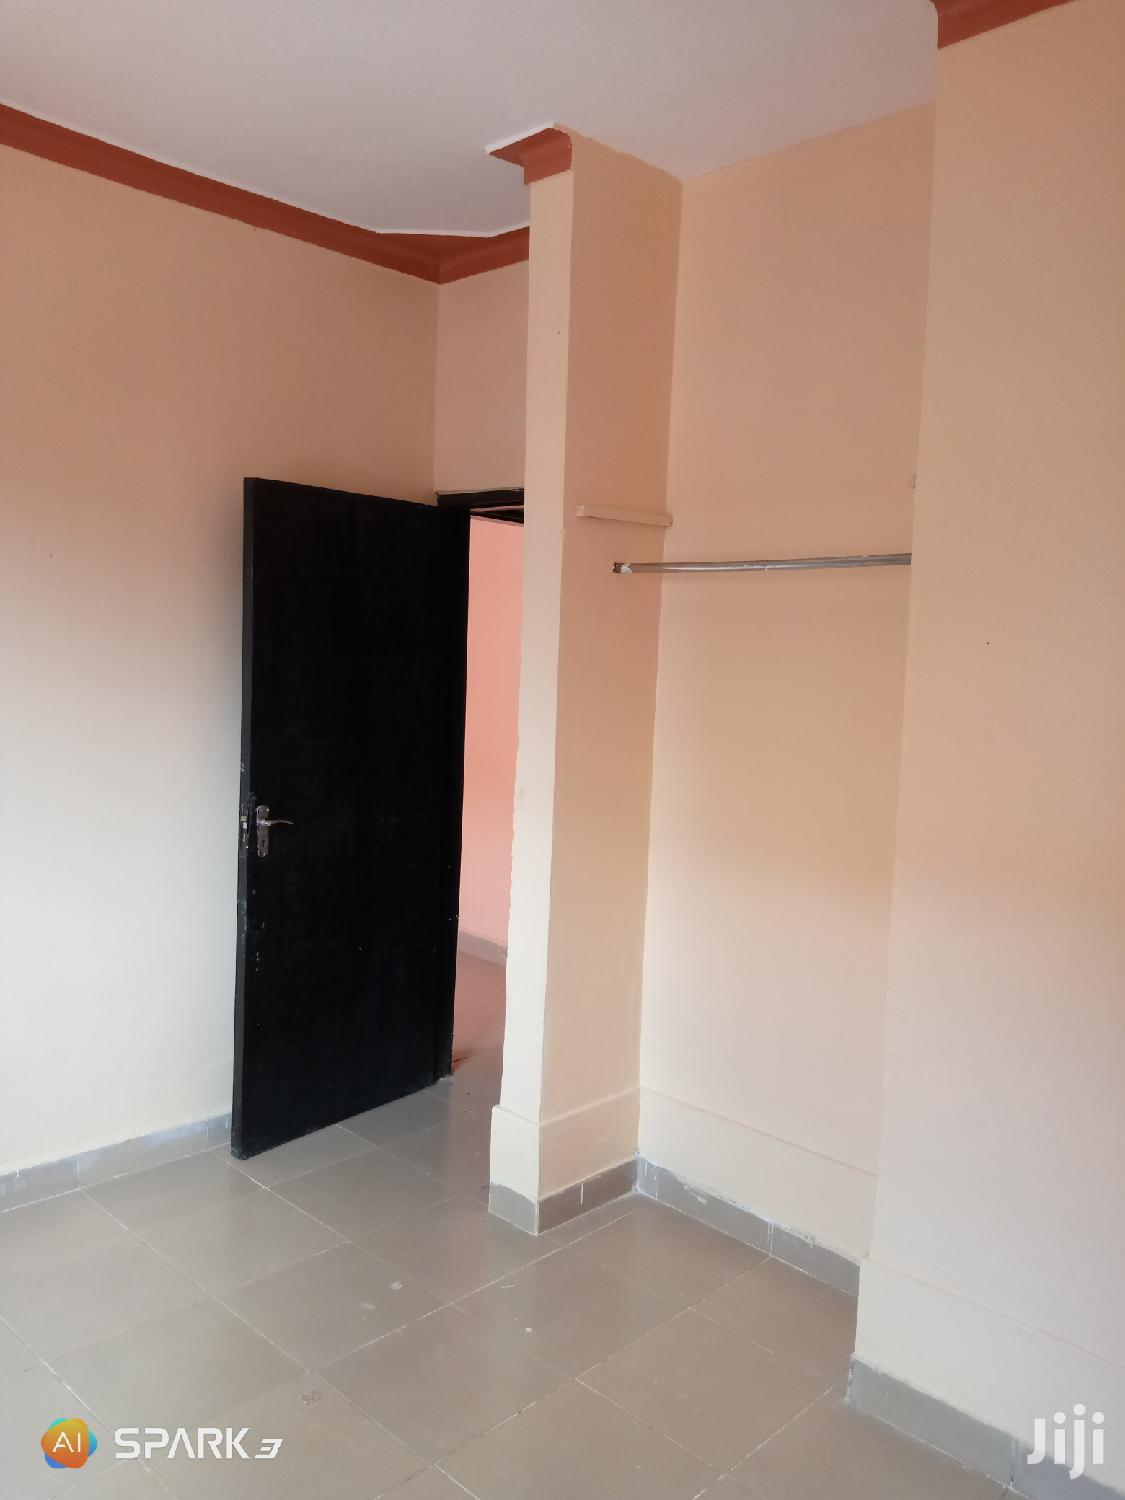 Charming Double Rooms For Rent In Kisaasi | Houses & Apartments For Rent for sale in Kampala, Central Region, Uganda